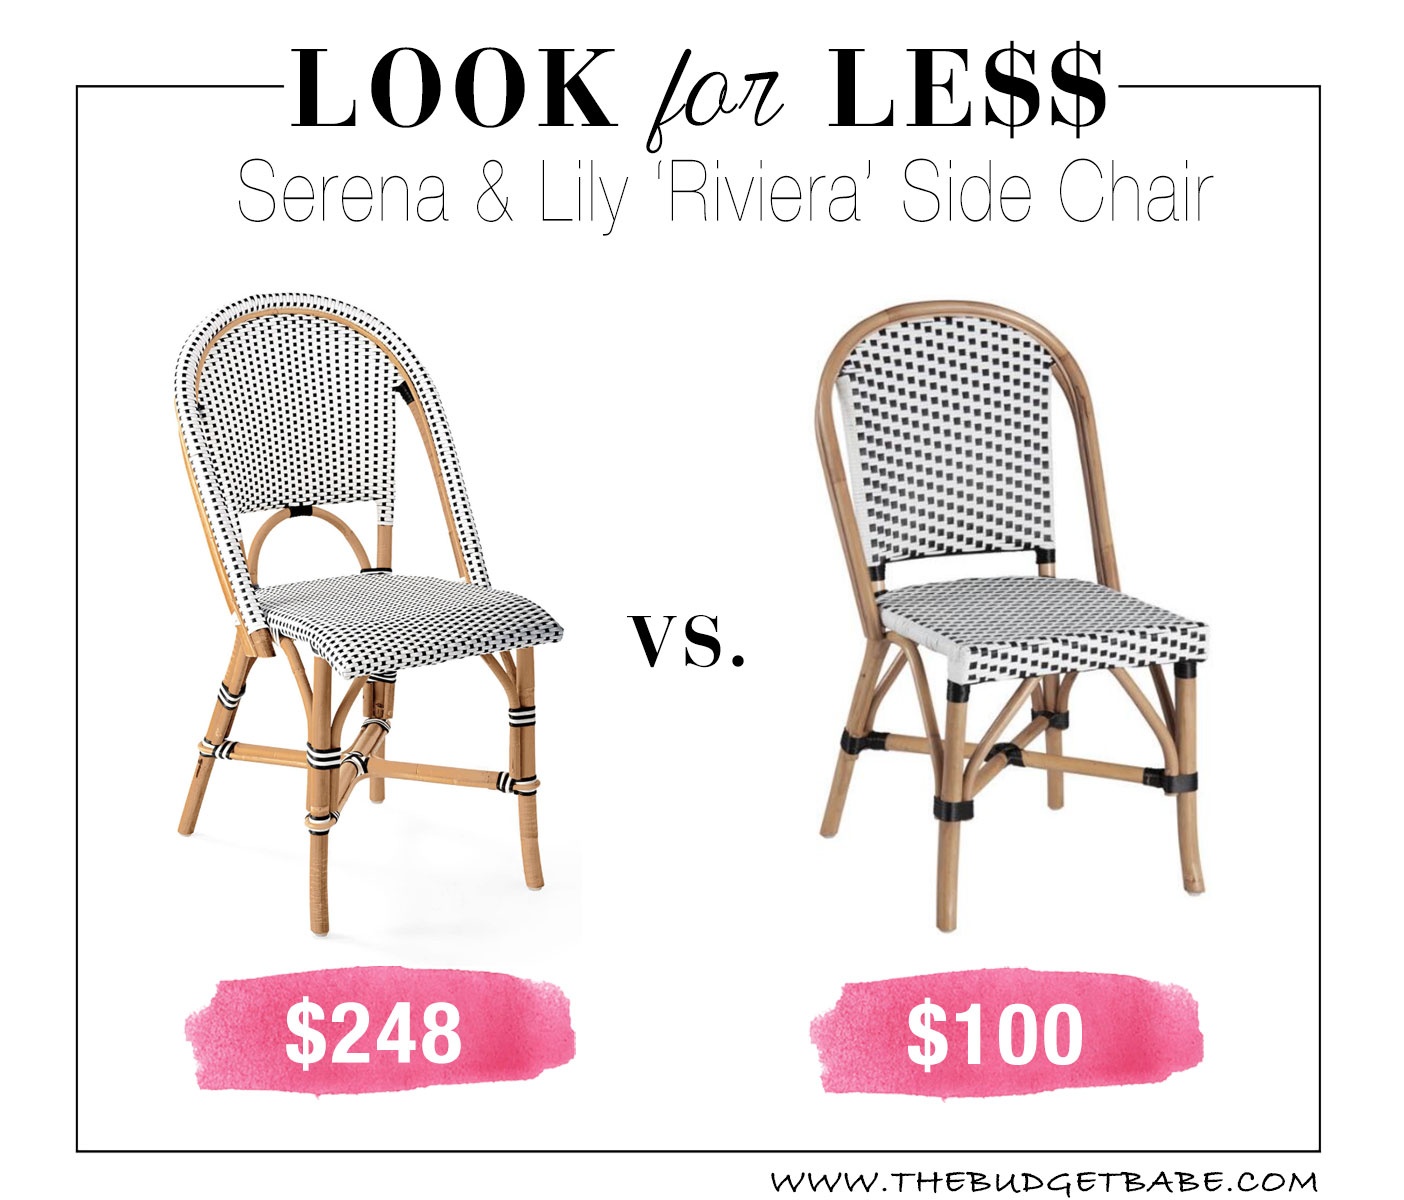 Serena & Lily 'Riviera' dining chair dupes at World Market!